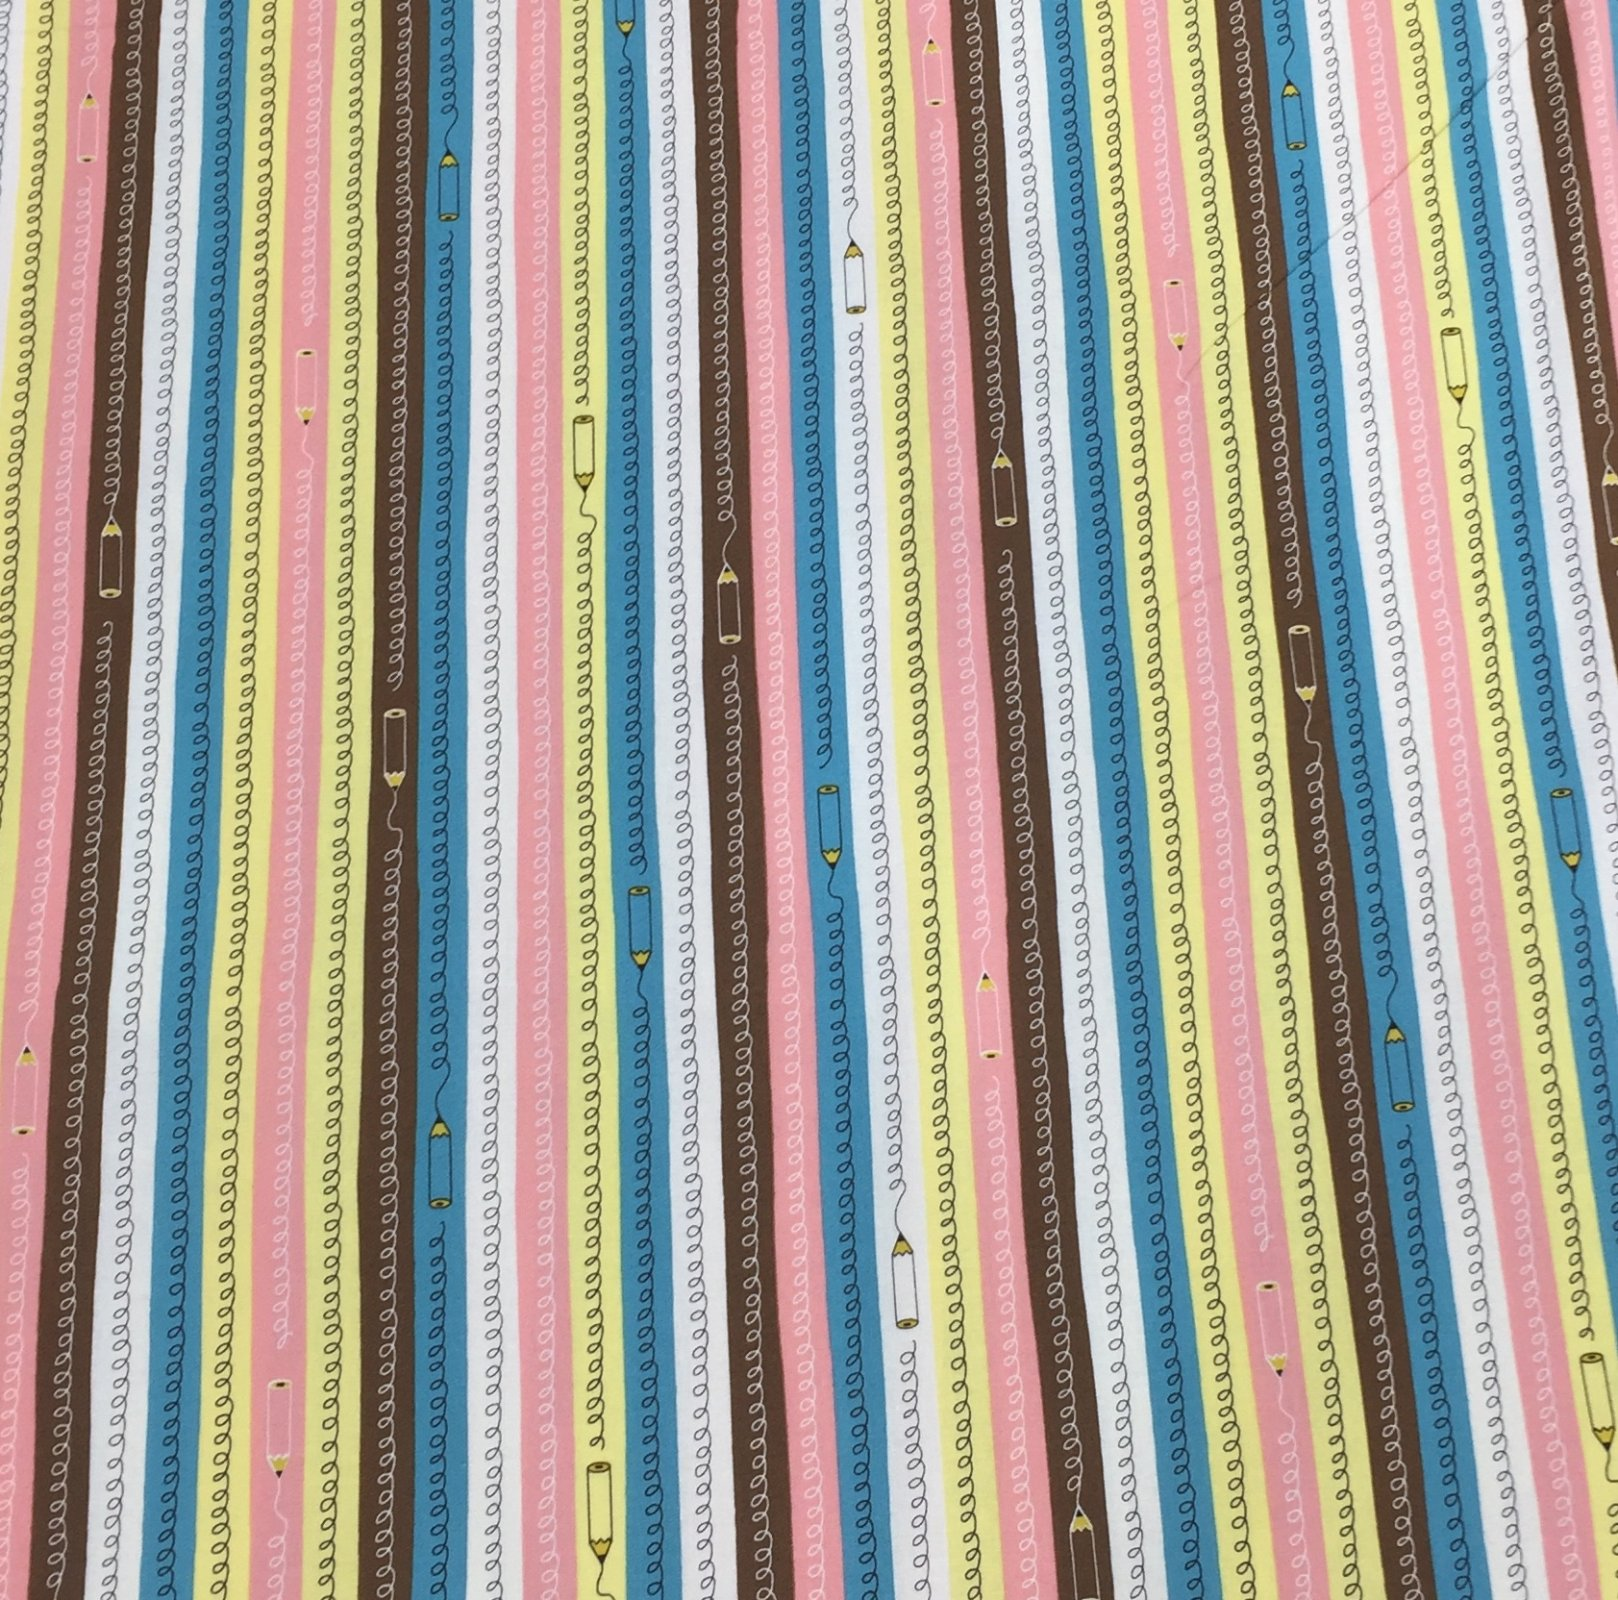 Cosmo Textiles - Pencil Stripes - Pink/Blue/Yellow